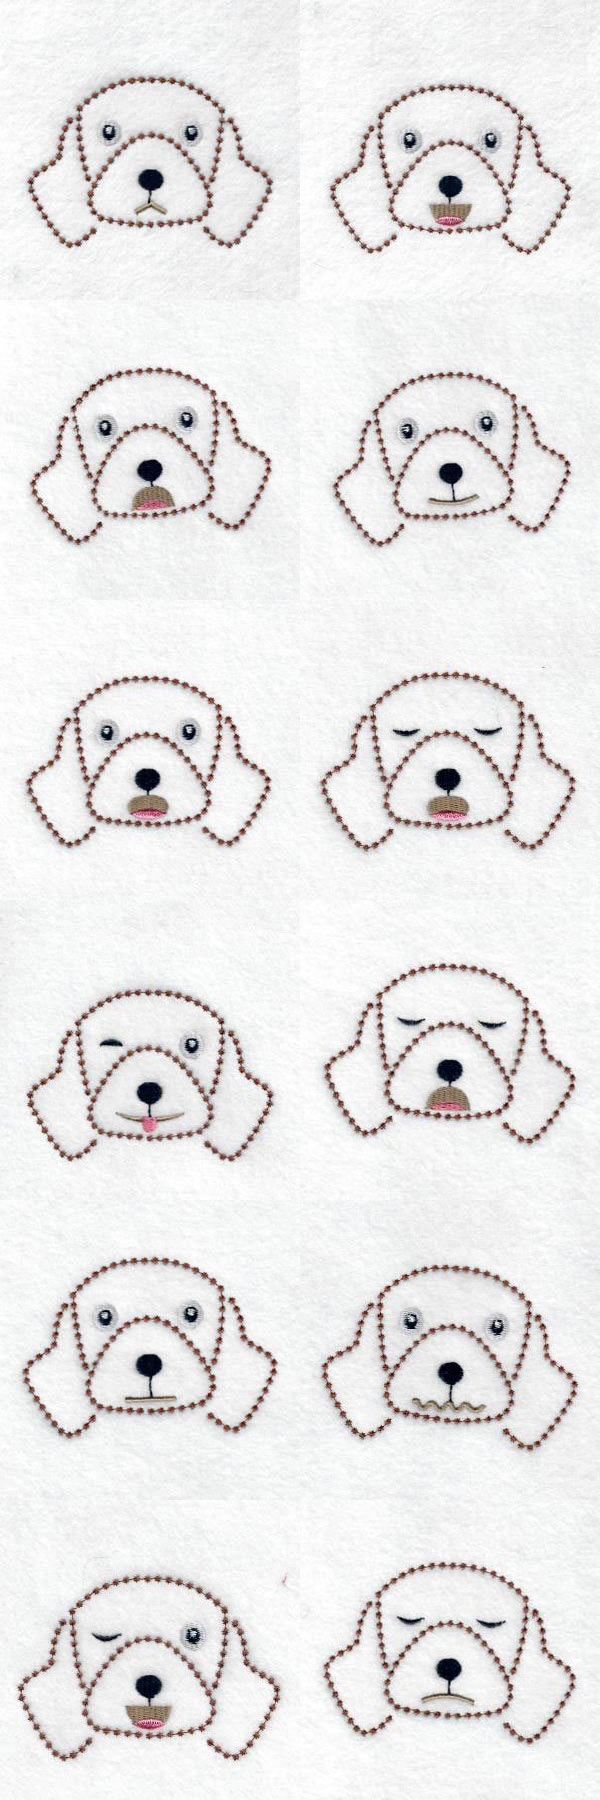 Candlewick Dog Expressions Embroidery Machine Design Details